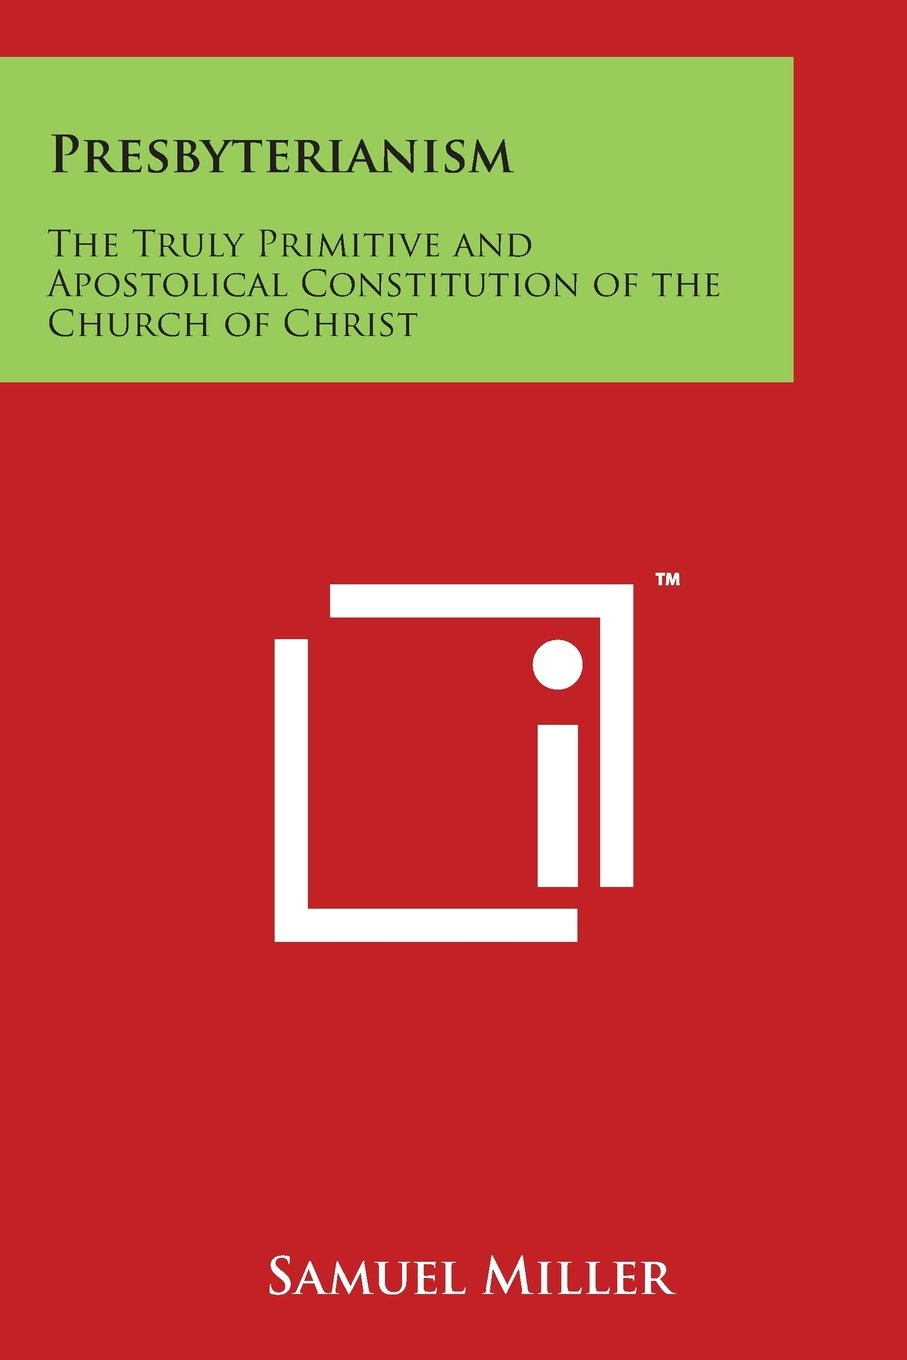 Presbyterianism: The Truly Primitive and Apostolical Constitution of the Church of Christ PDF